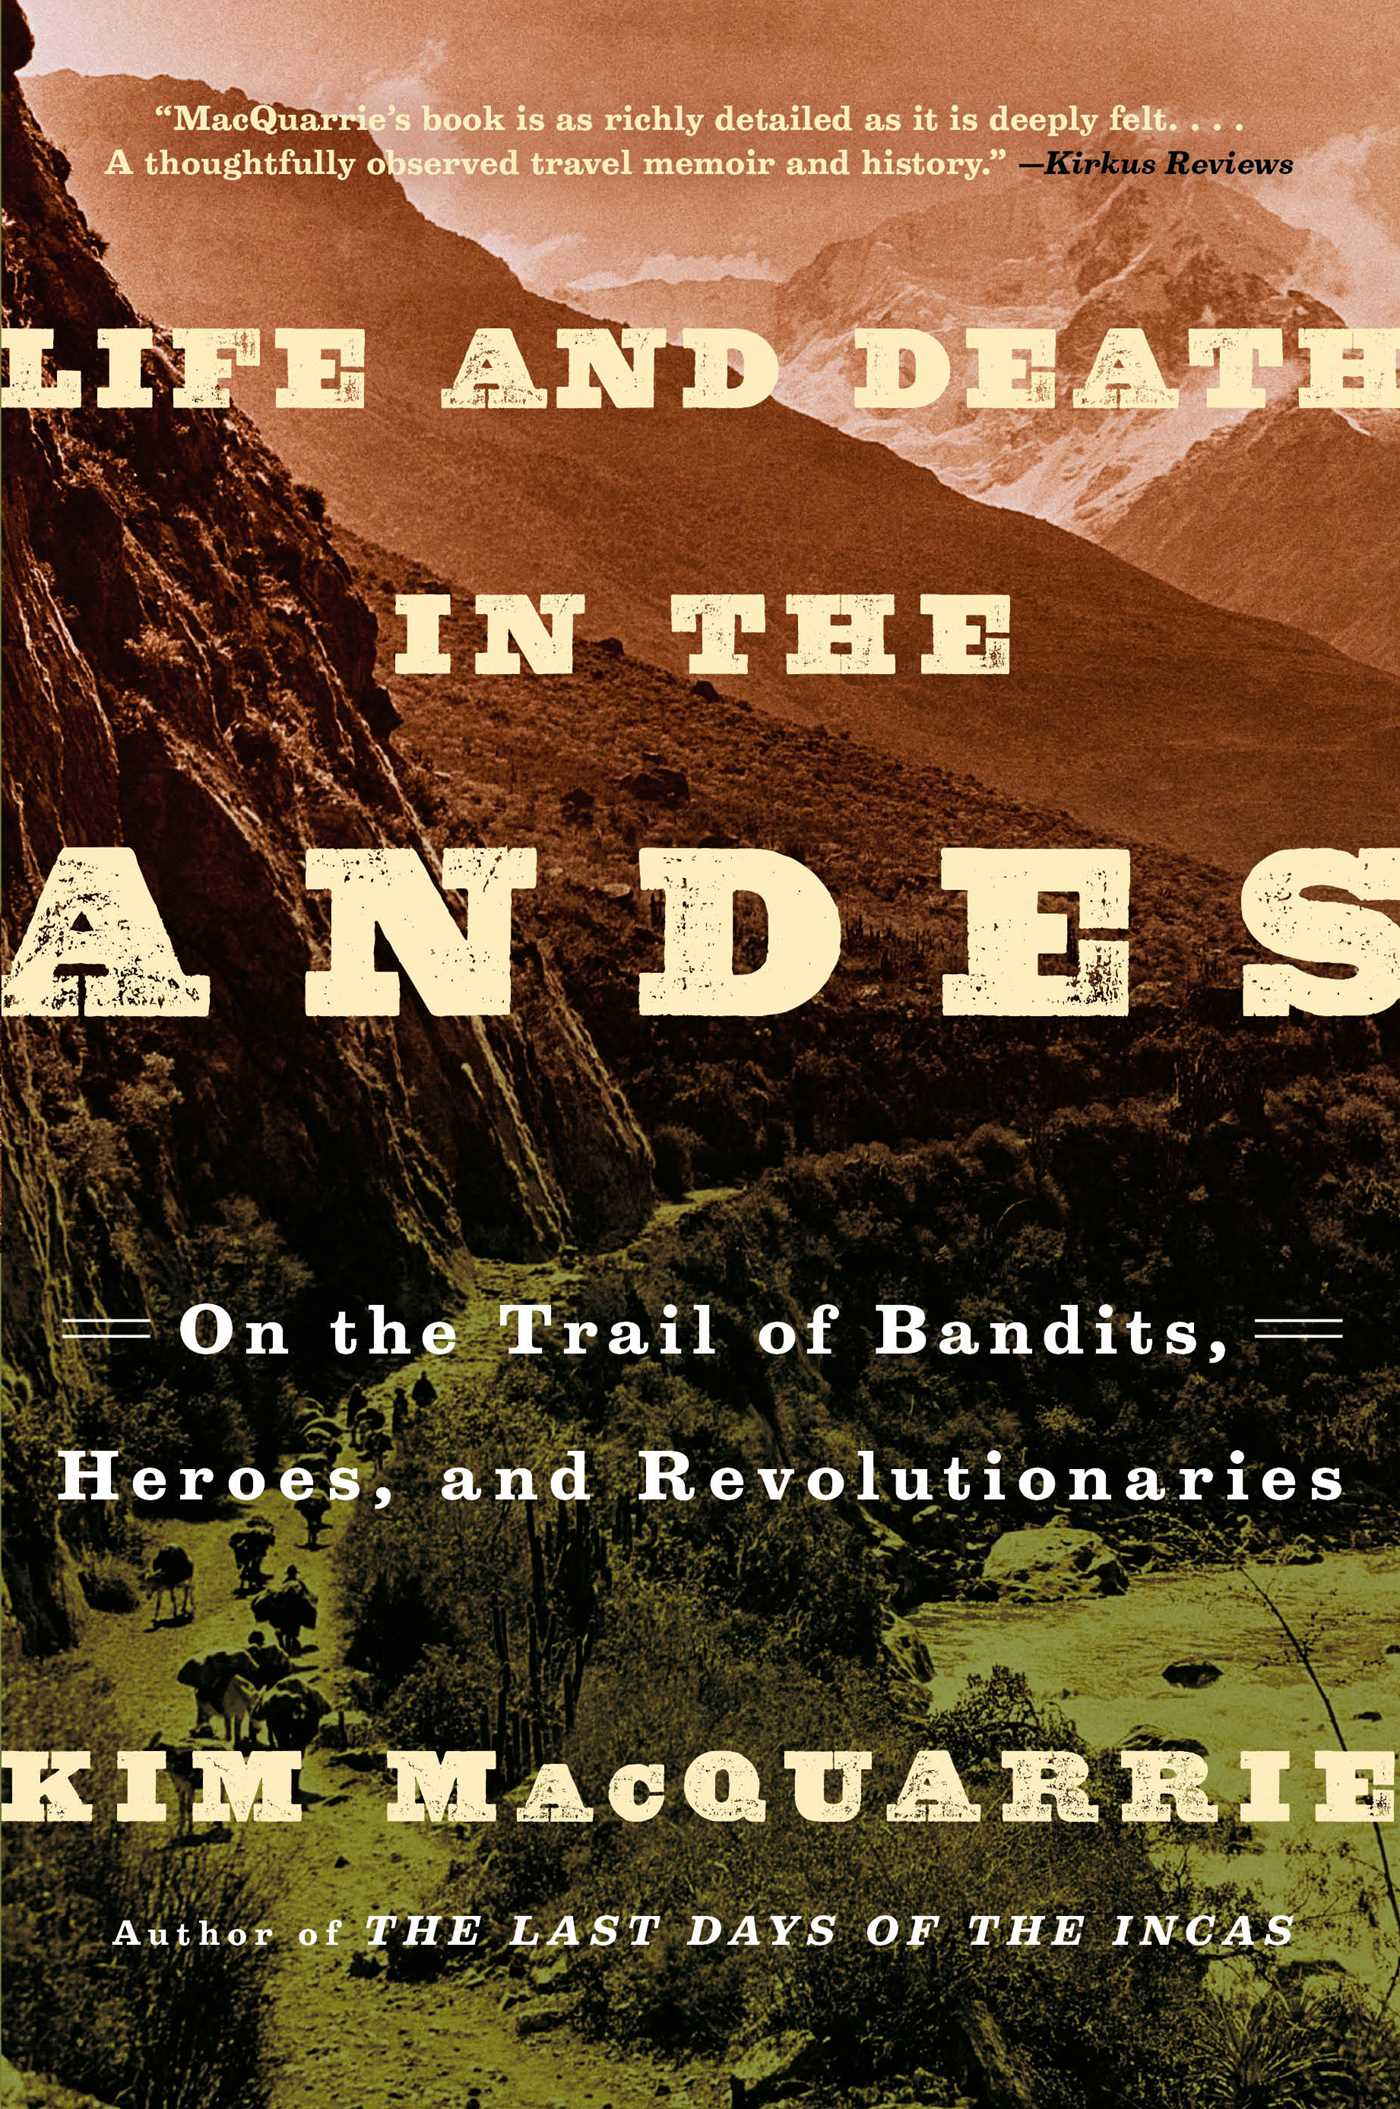 Life and death in the andes 9781439168899 hr